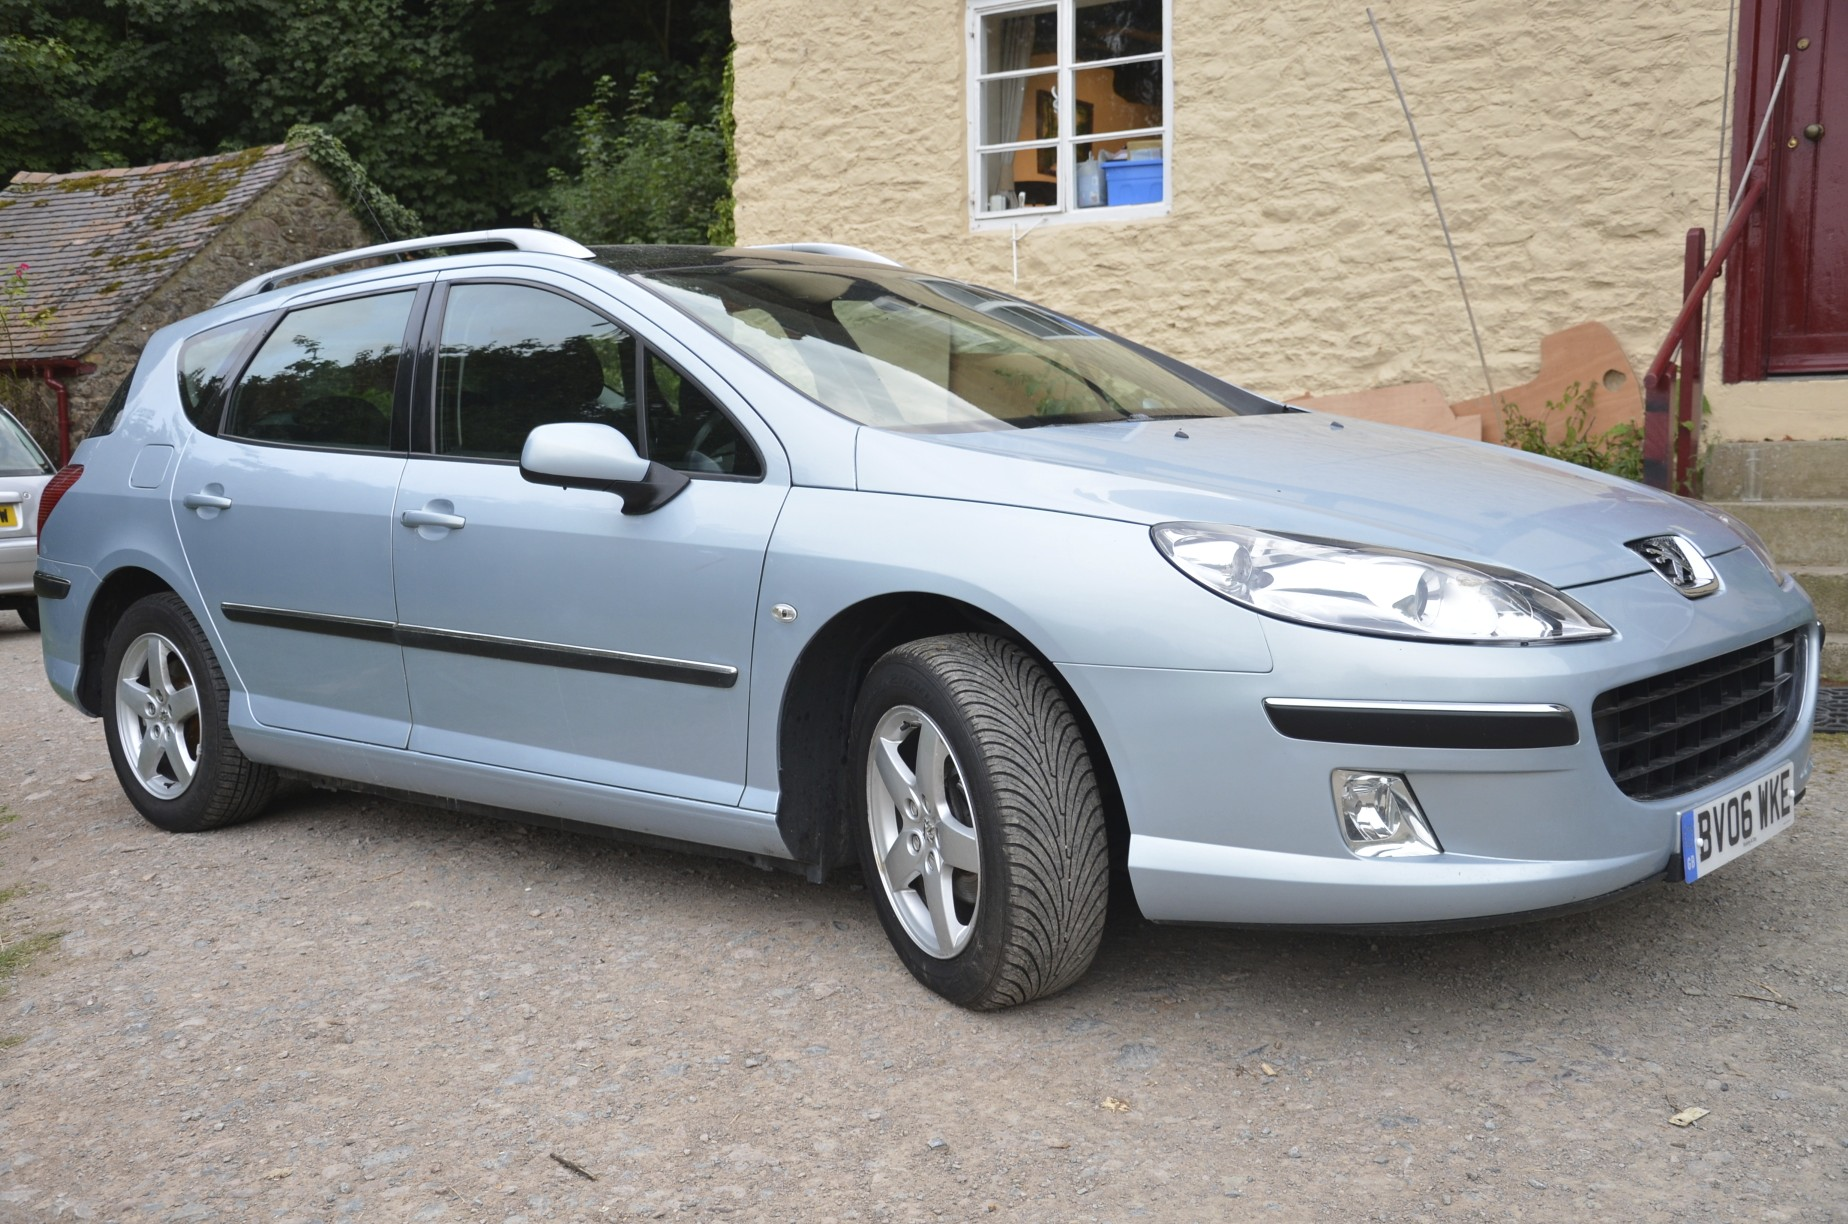 2006 peugeot 407 1 6 hdi 110 se sw panoramic sunroof. Black Bedroom Furniture Sets. Home Design Ideas